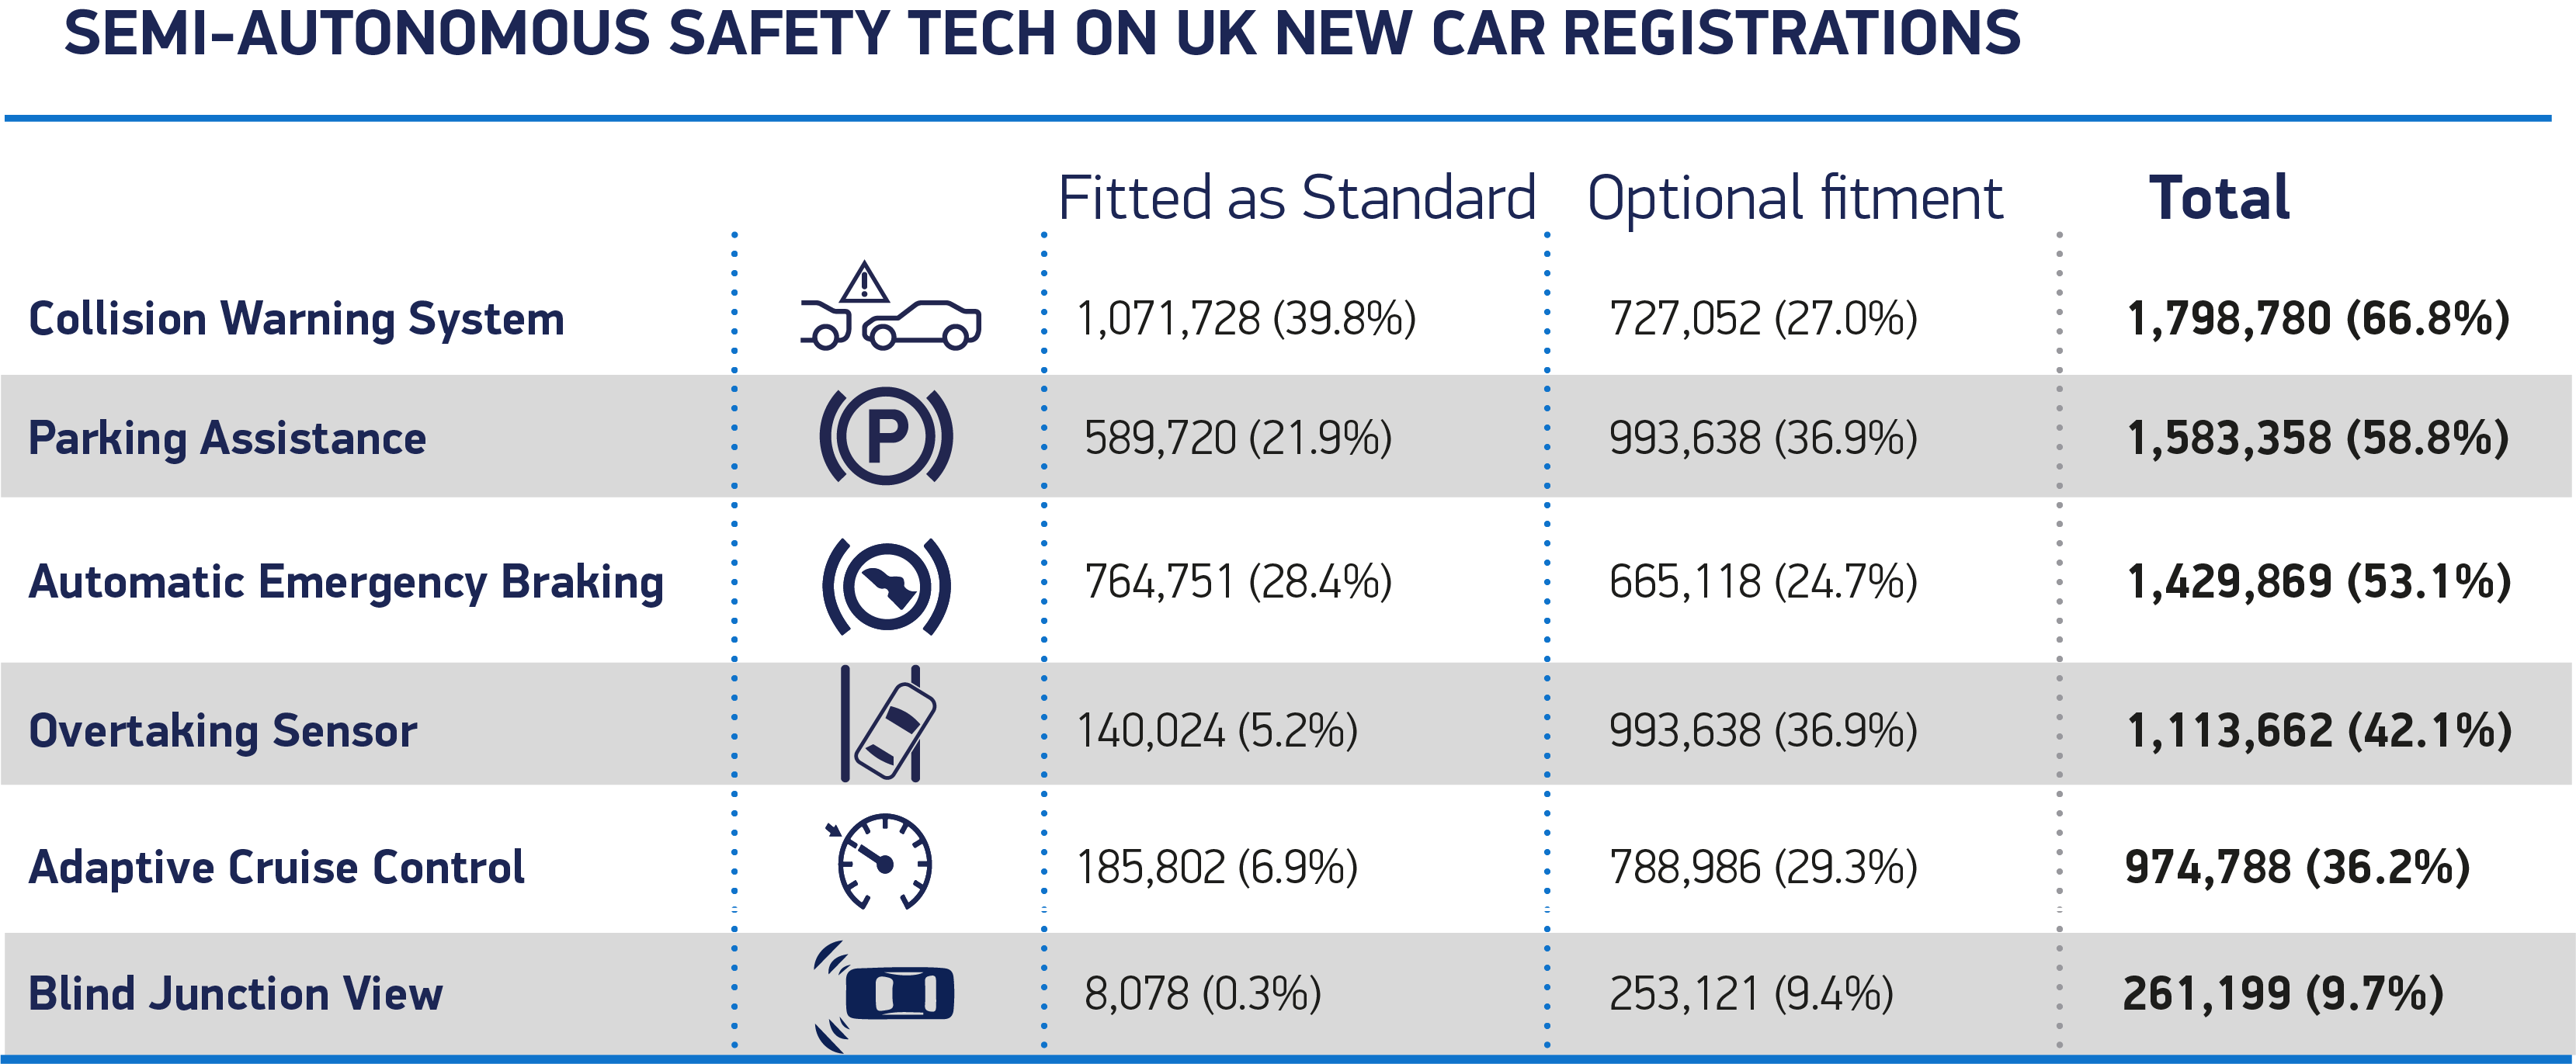 Semi-Autonomous Safety Tech on UK new car registrations